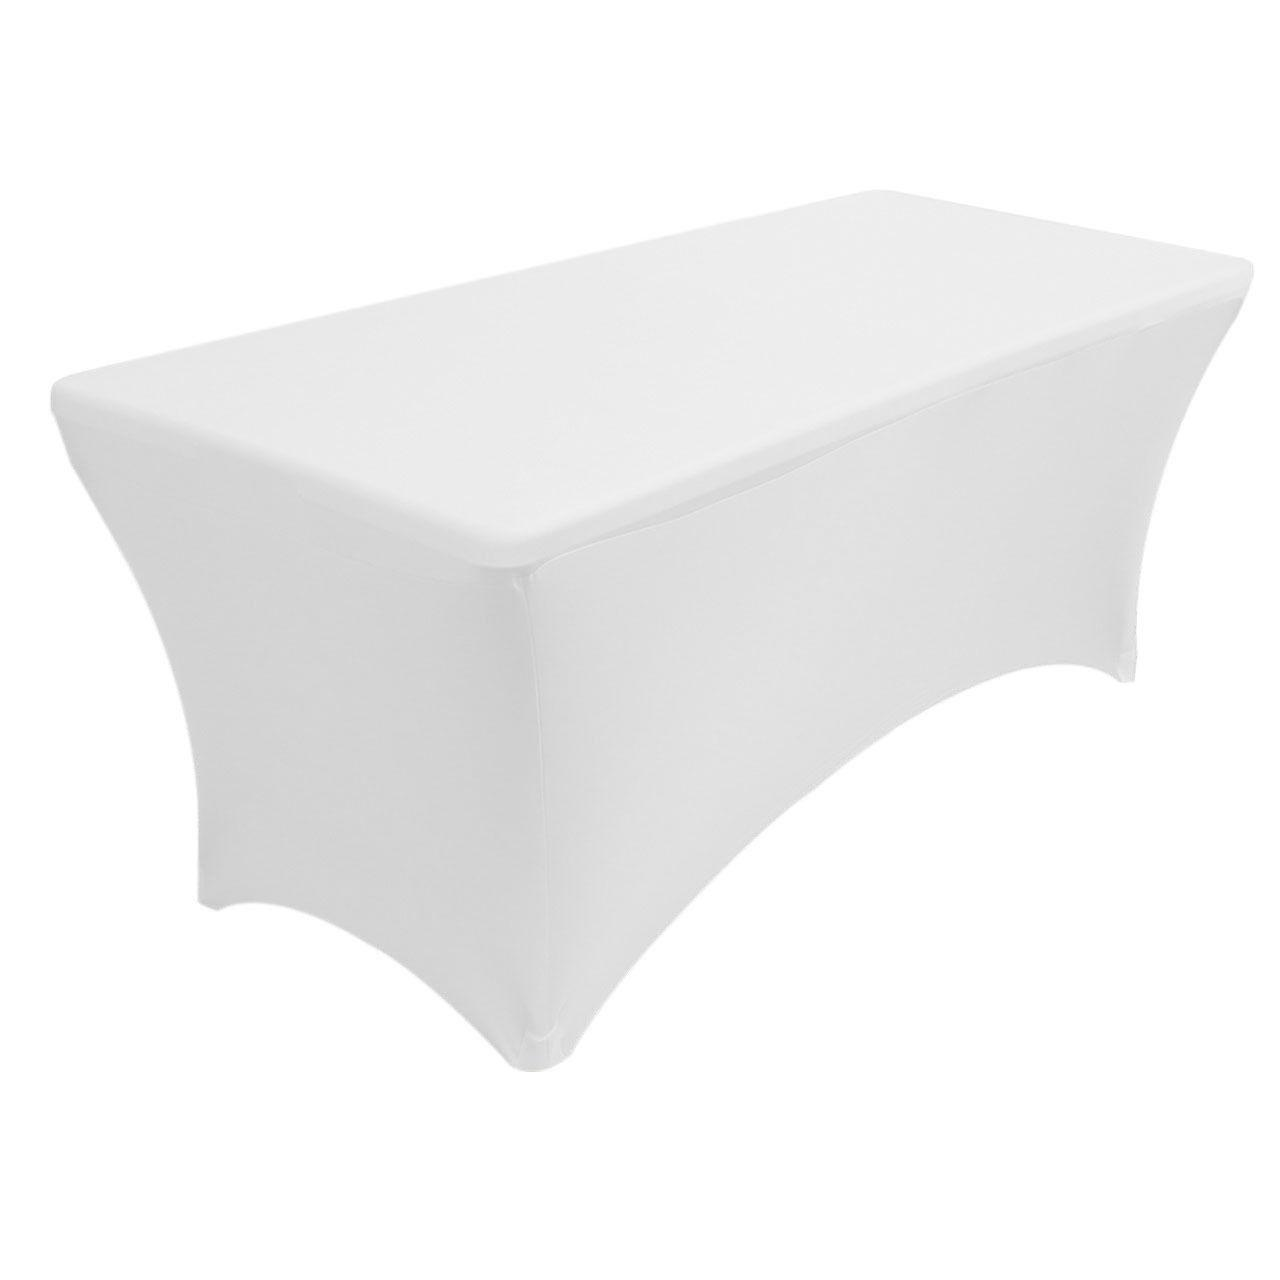 6' ft. Spandex Fitted Stretch Tablecloth Table Cover Wedding